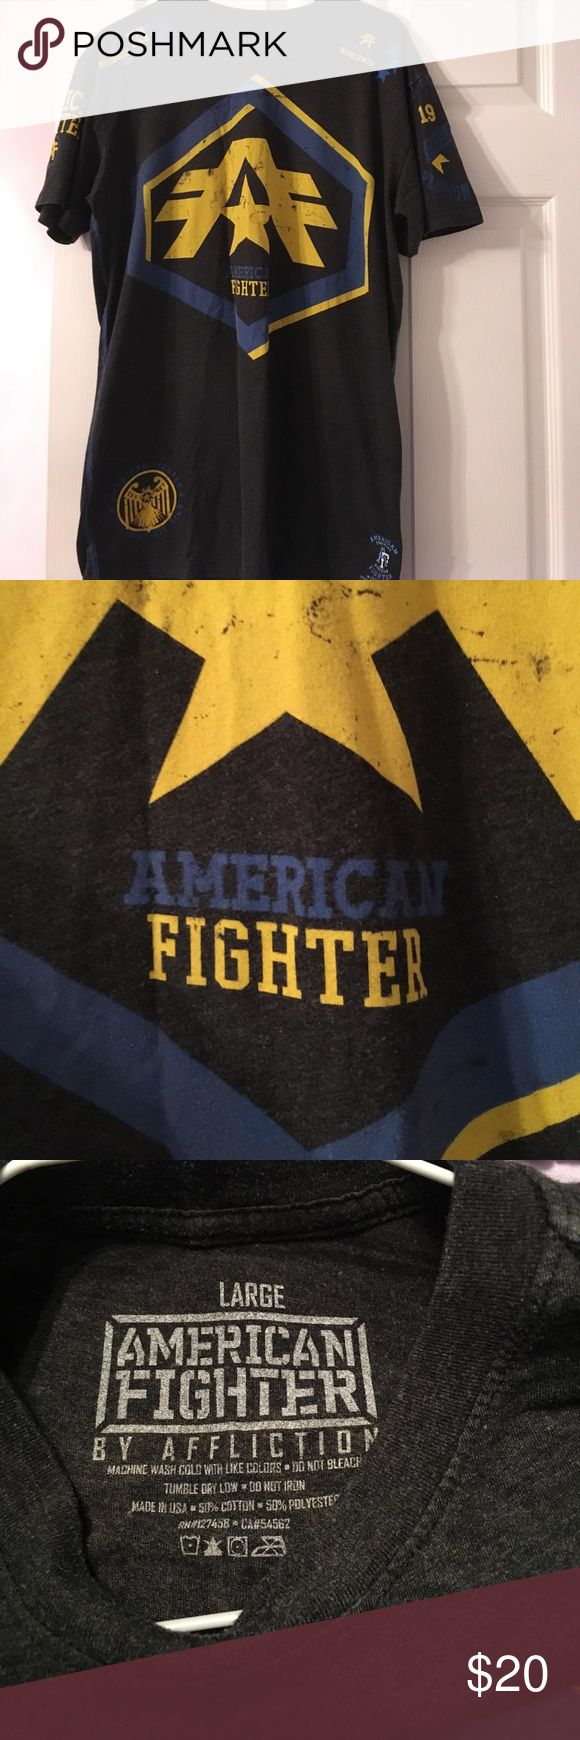 American fighter size large American fighter size large t shirt excellent condition American Fighter Shirts Tees - Short Sleeve